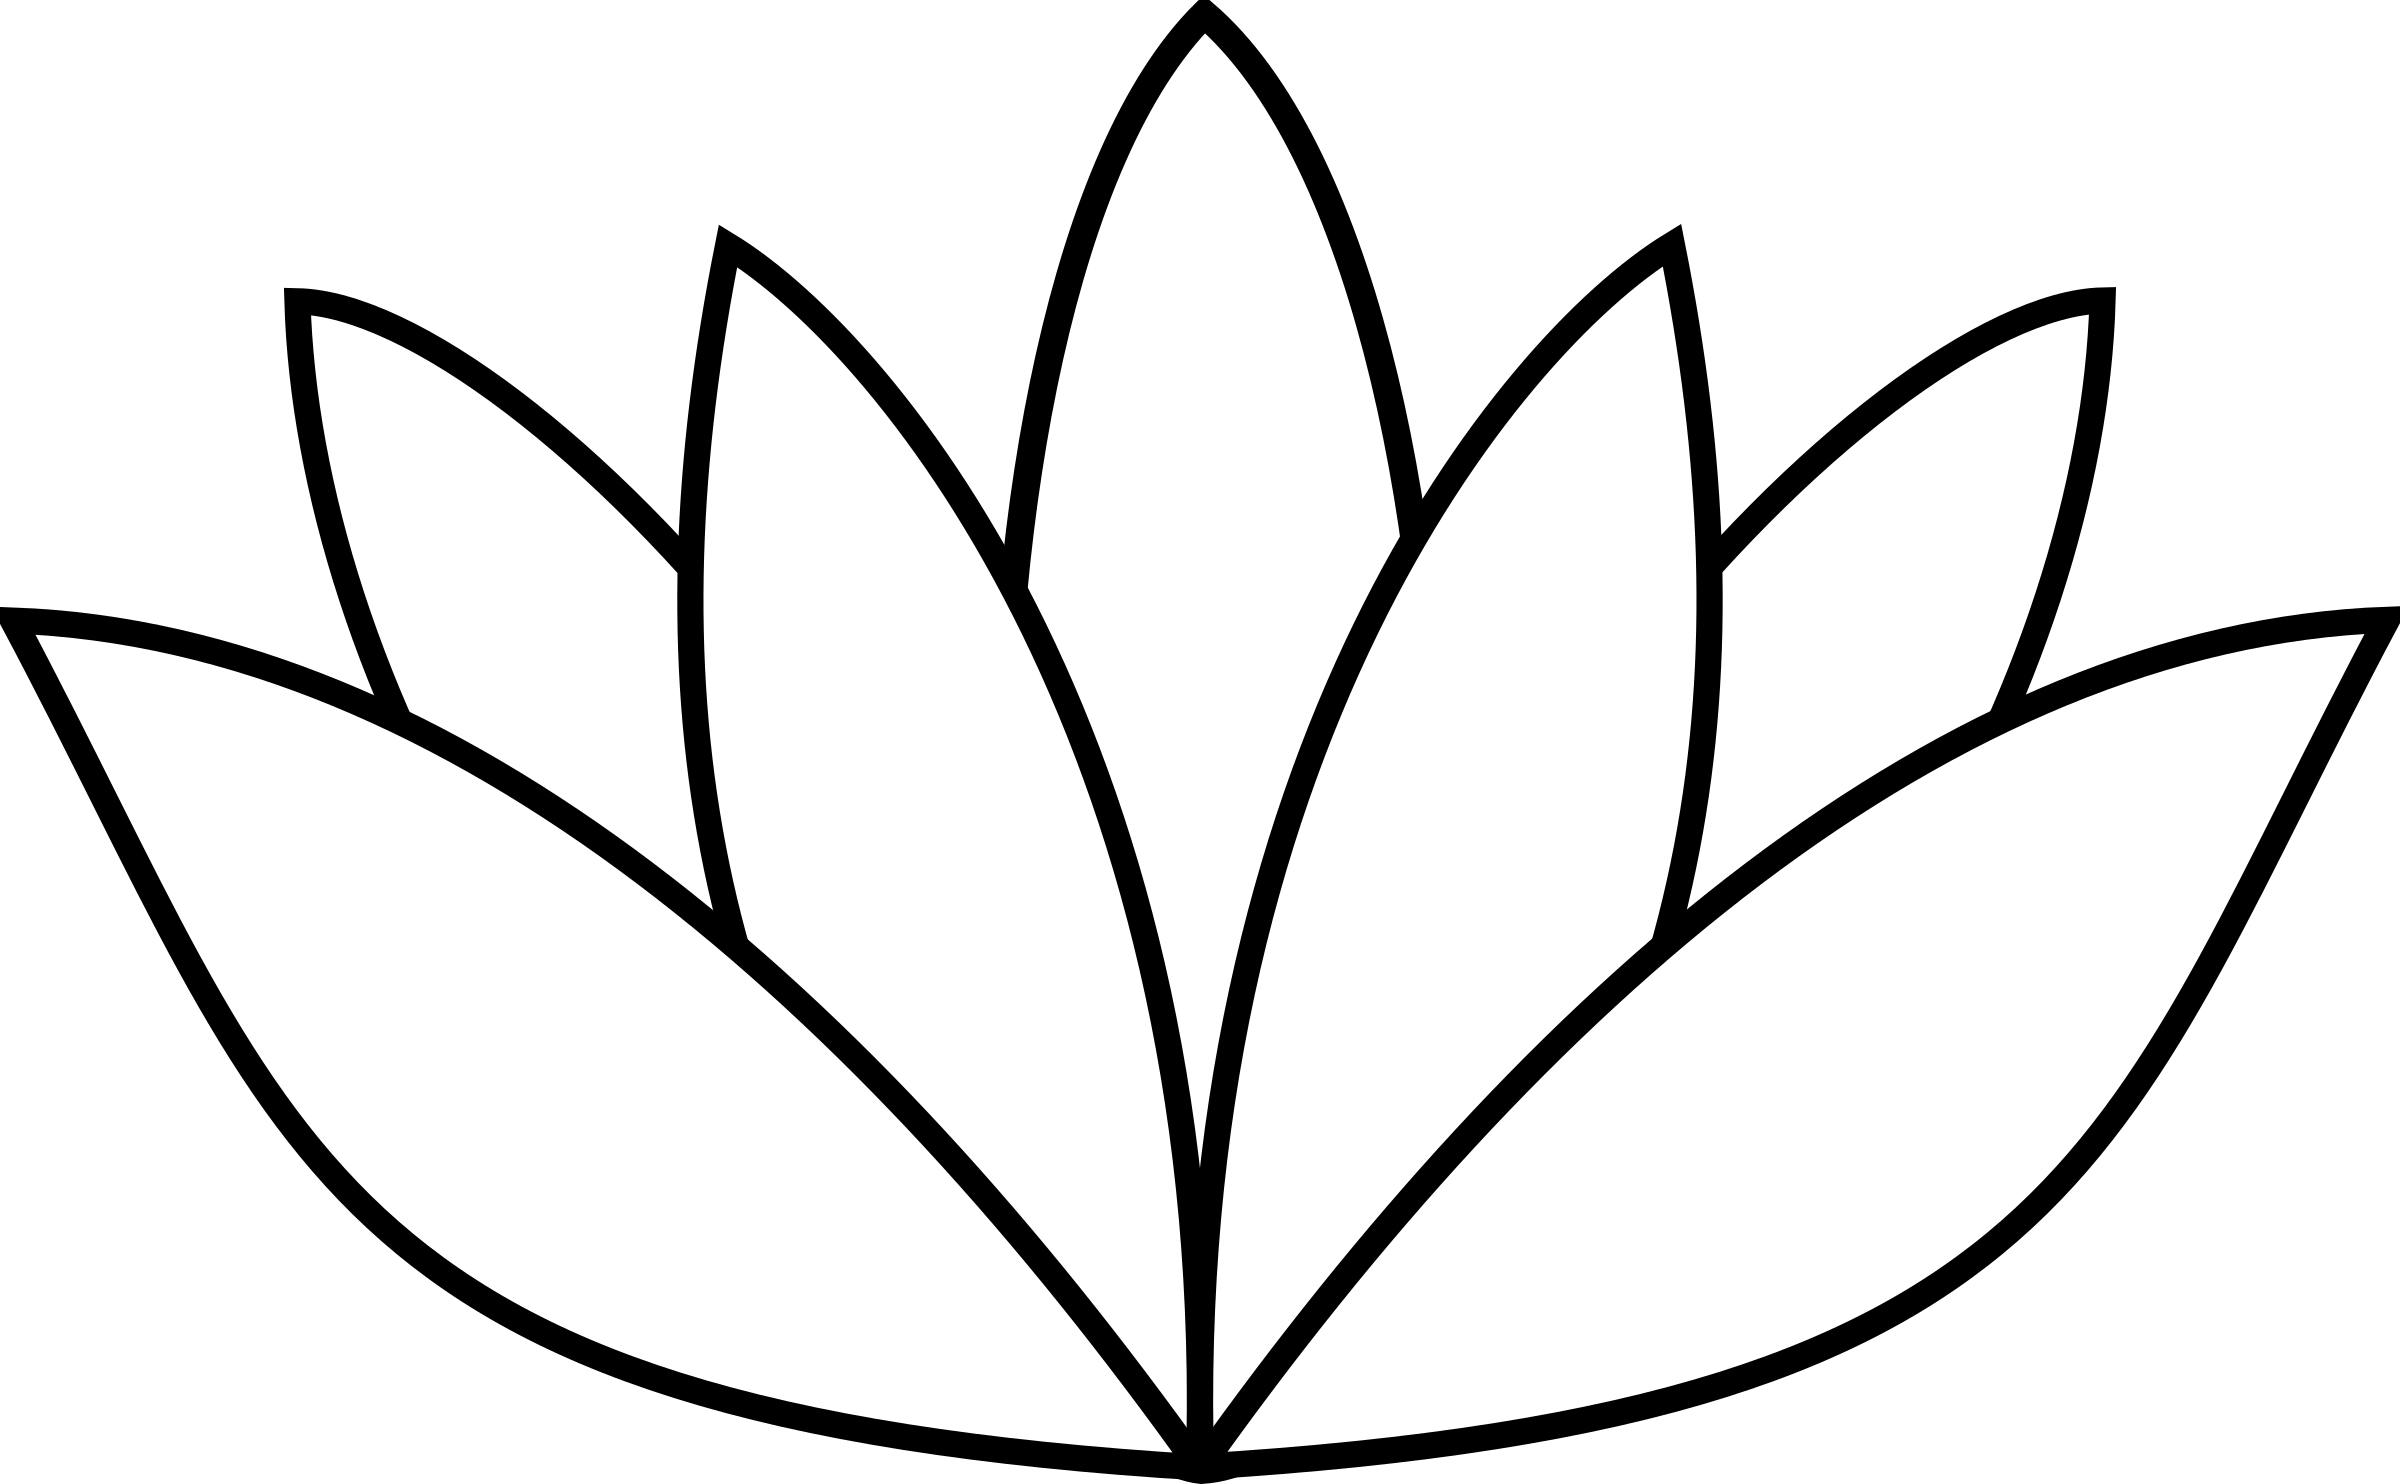 banner royalty free Lotus flower clipart black and white. Big image png